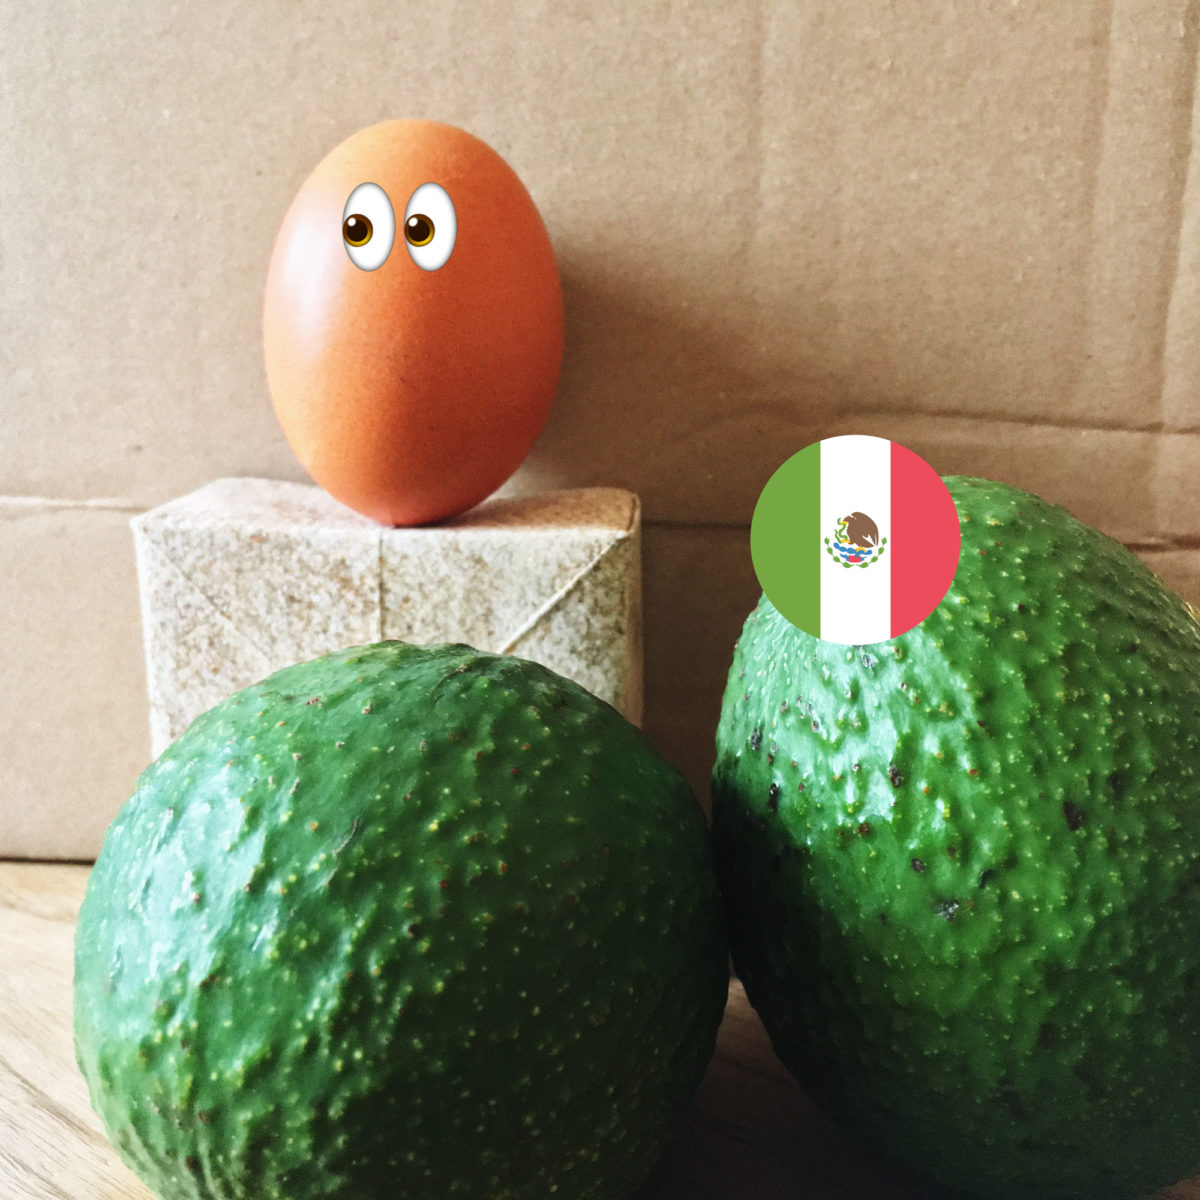 Humpty Dumpty an anvocados